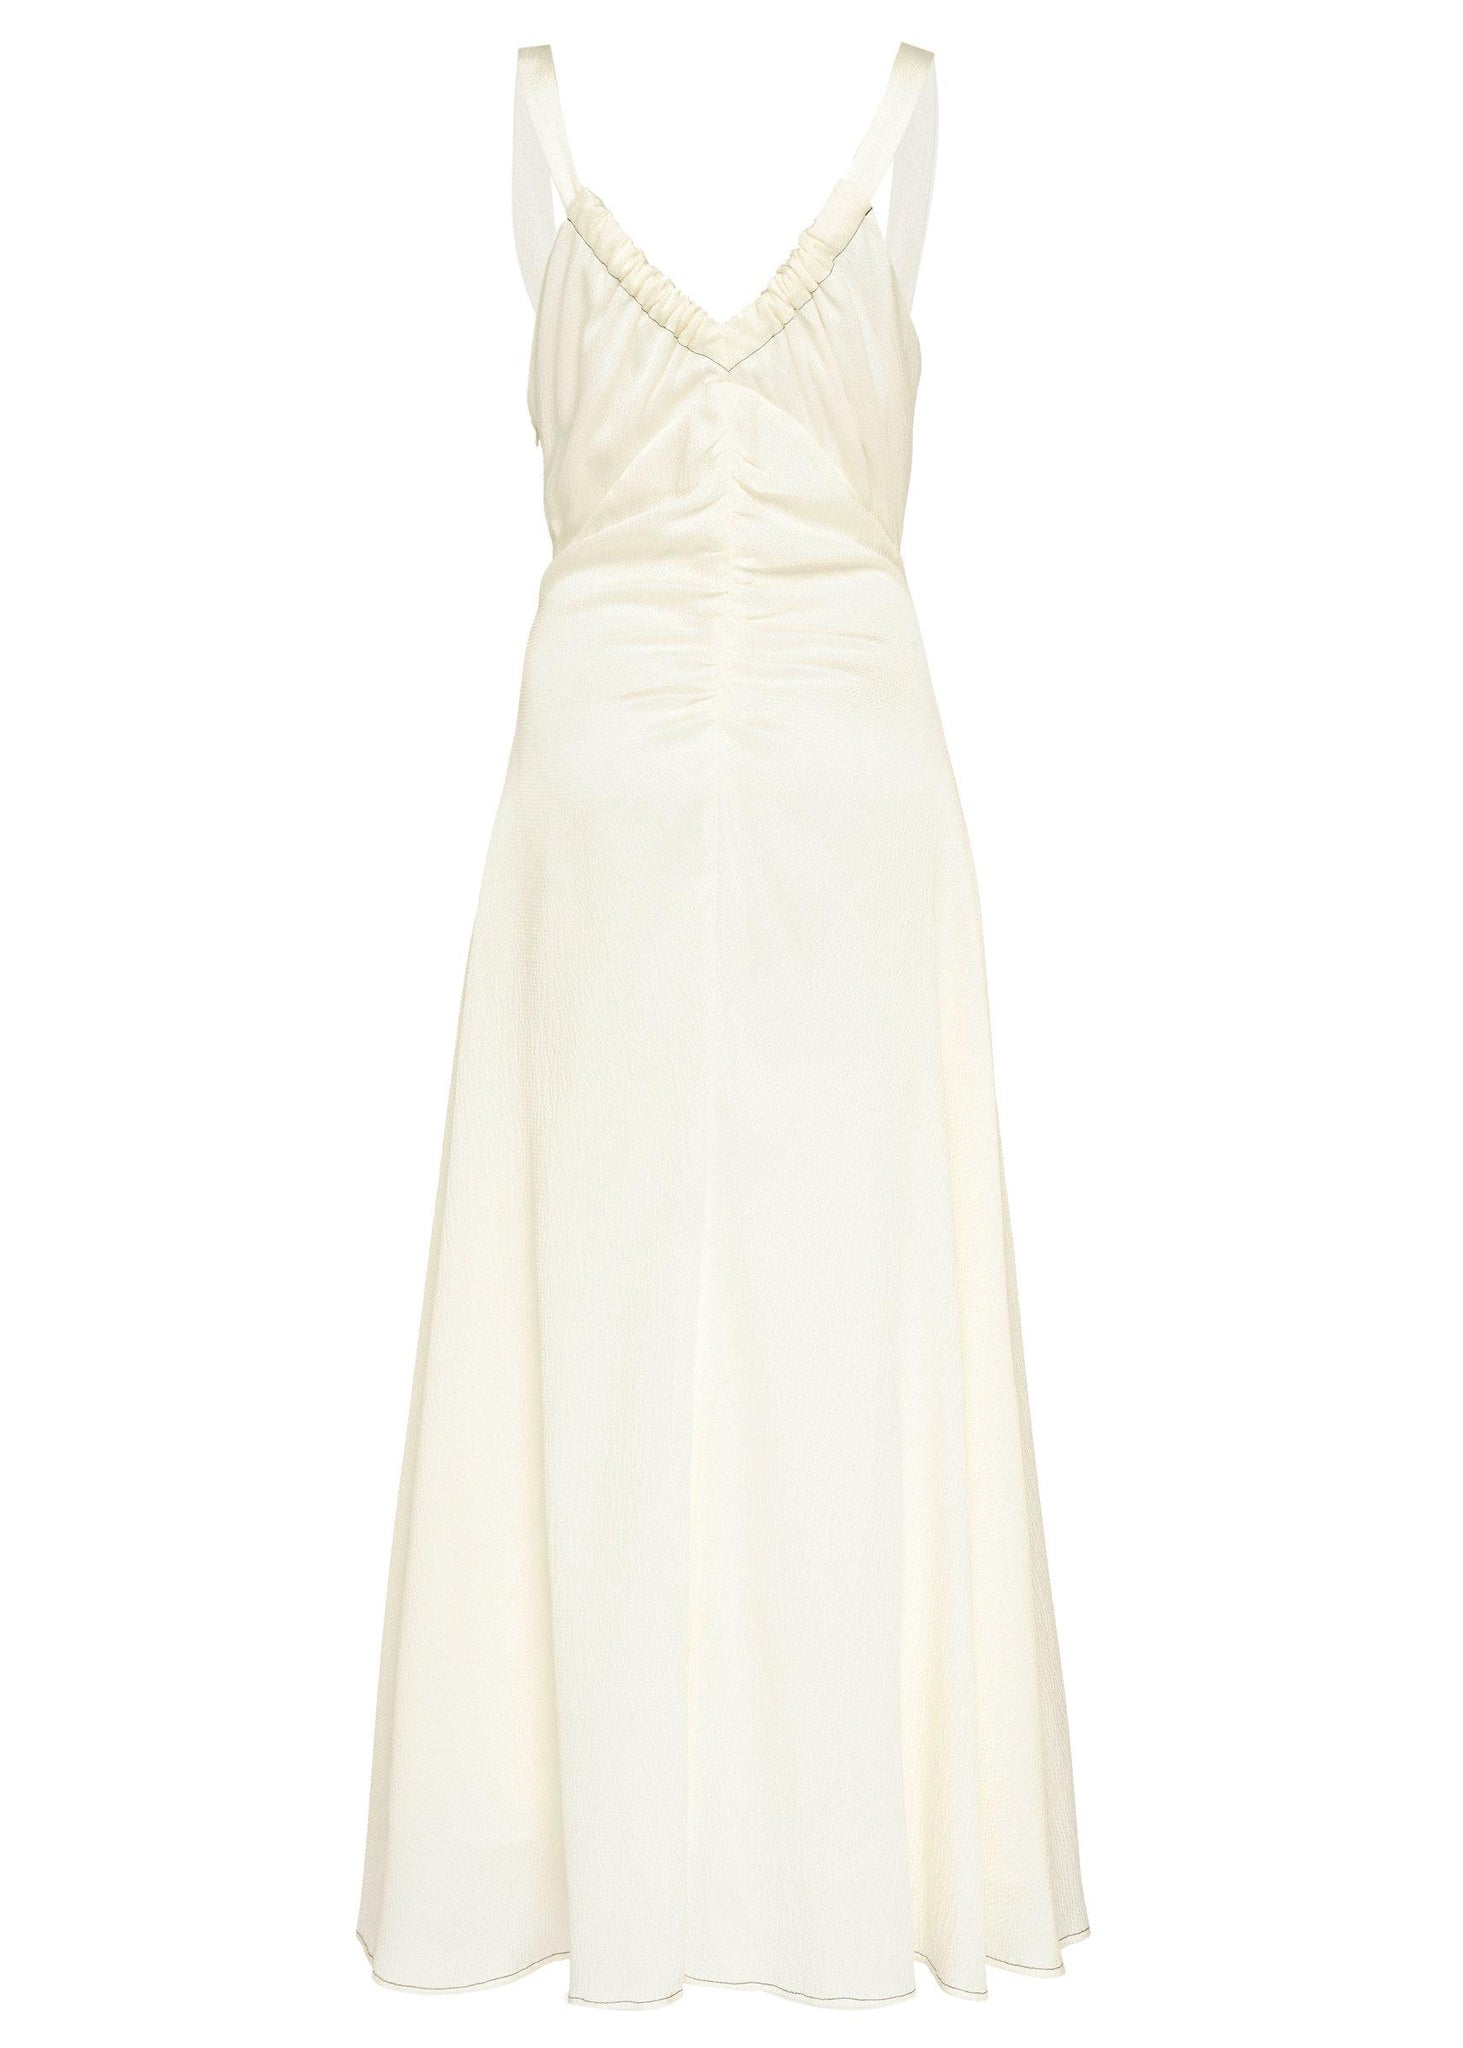 Toni dress - Hammered Silk - Ivory